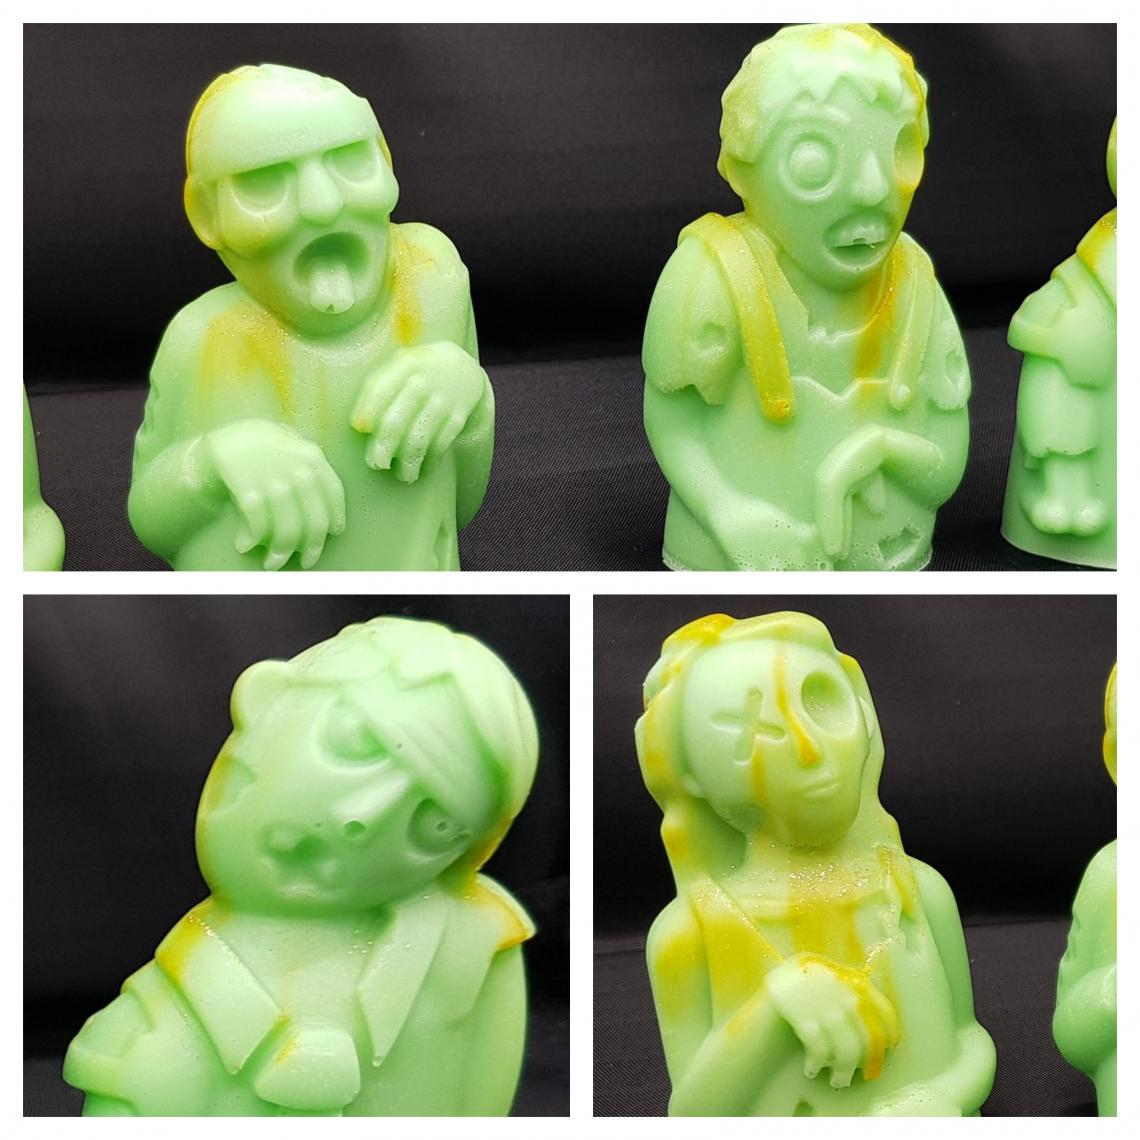 4 zombie soaps in green.